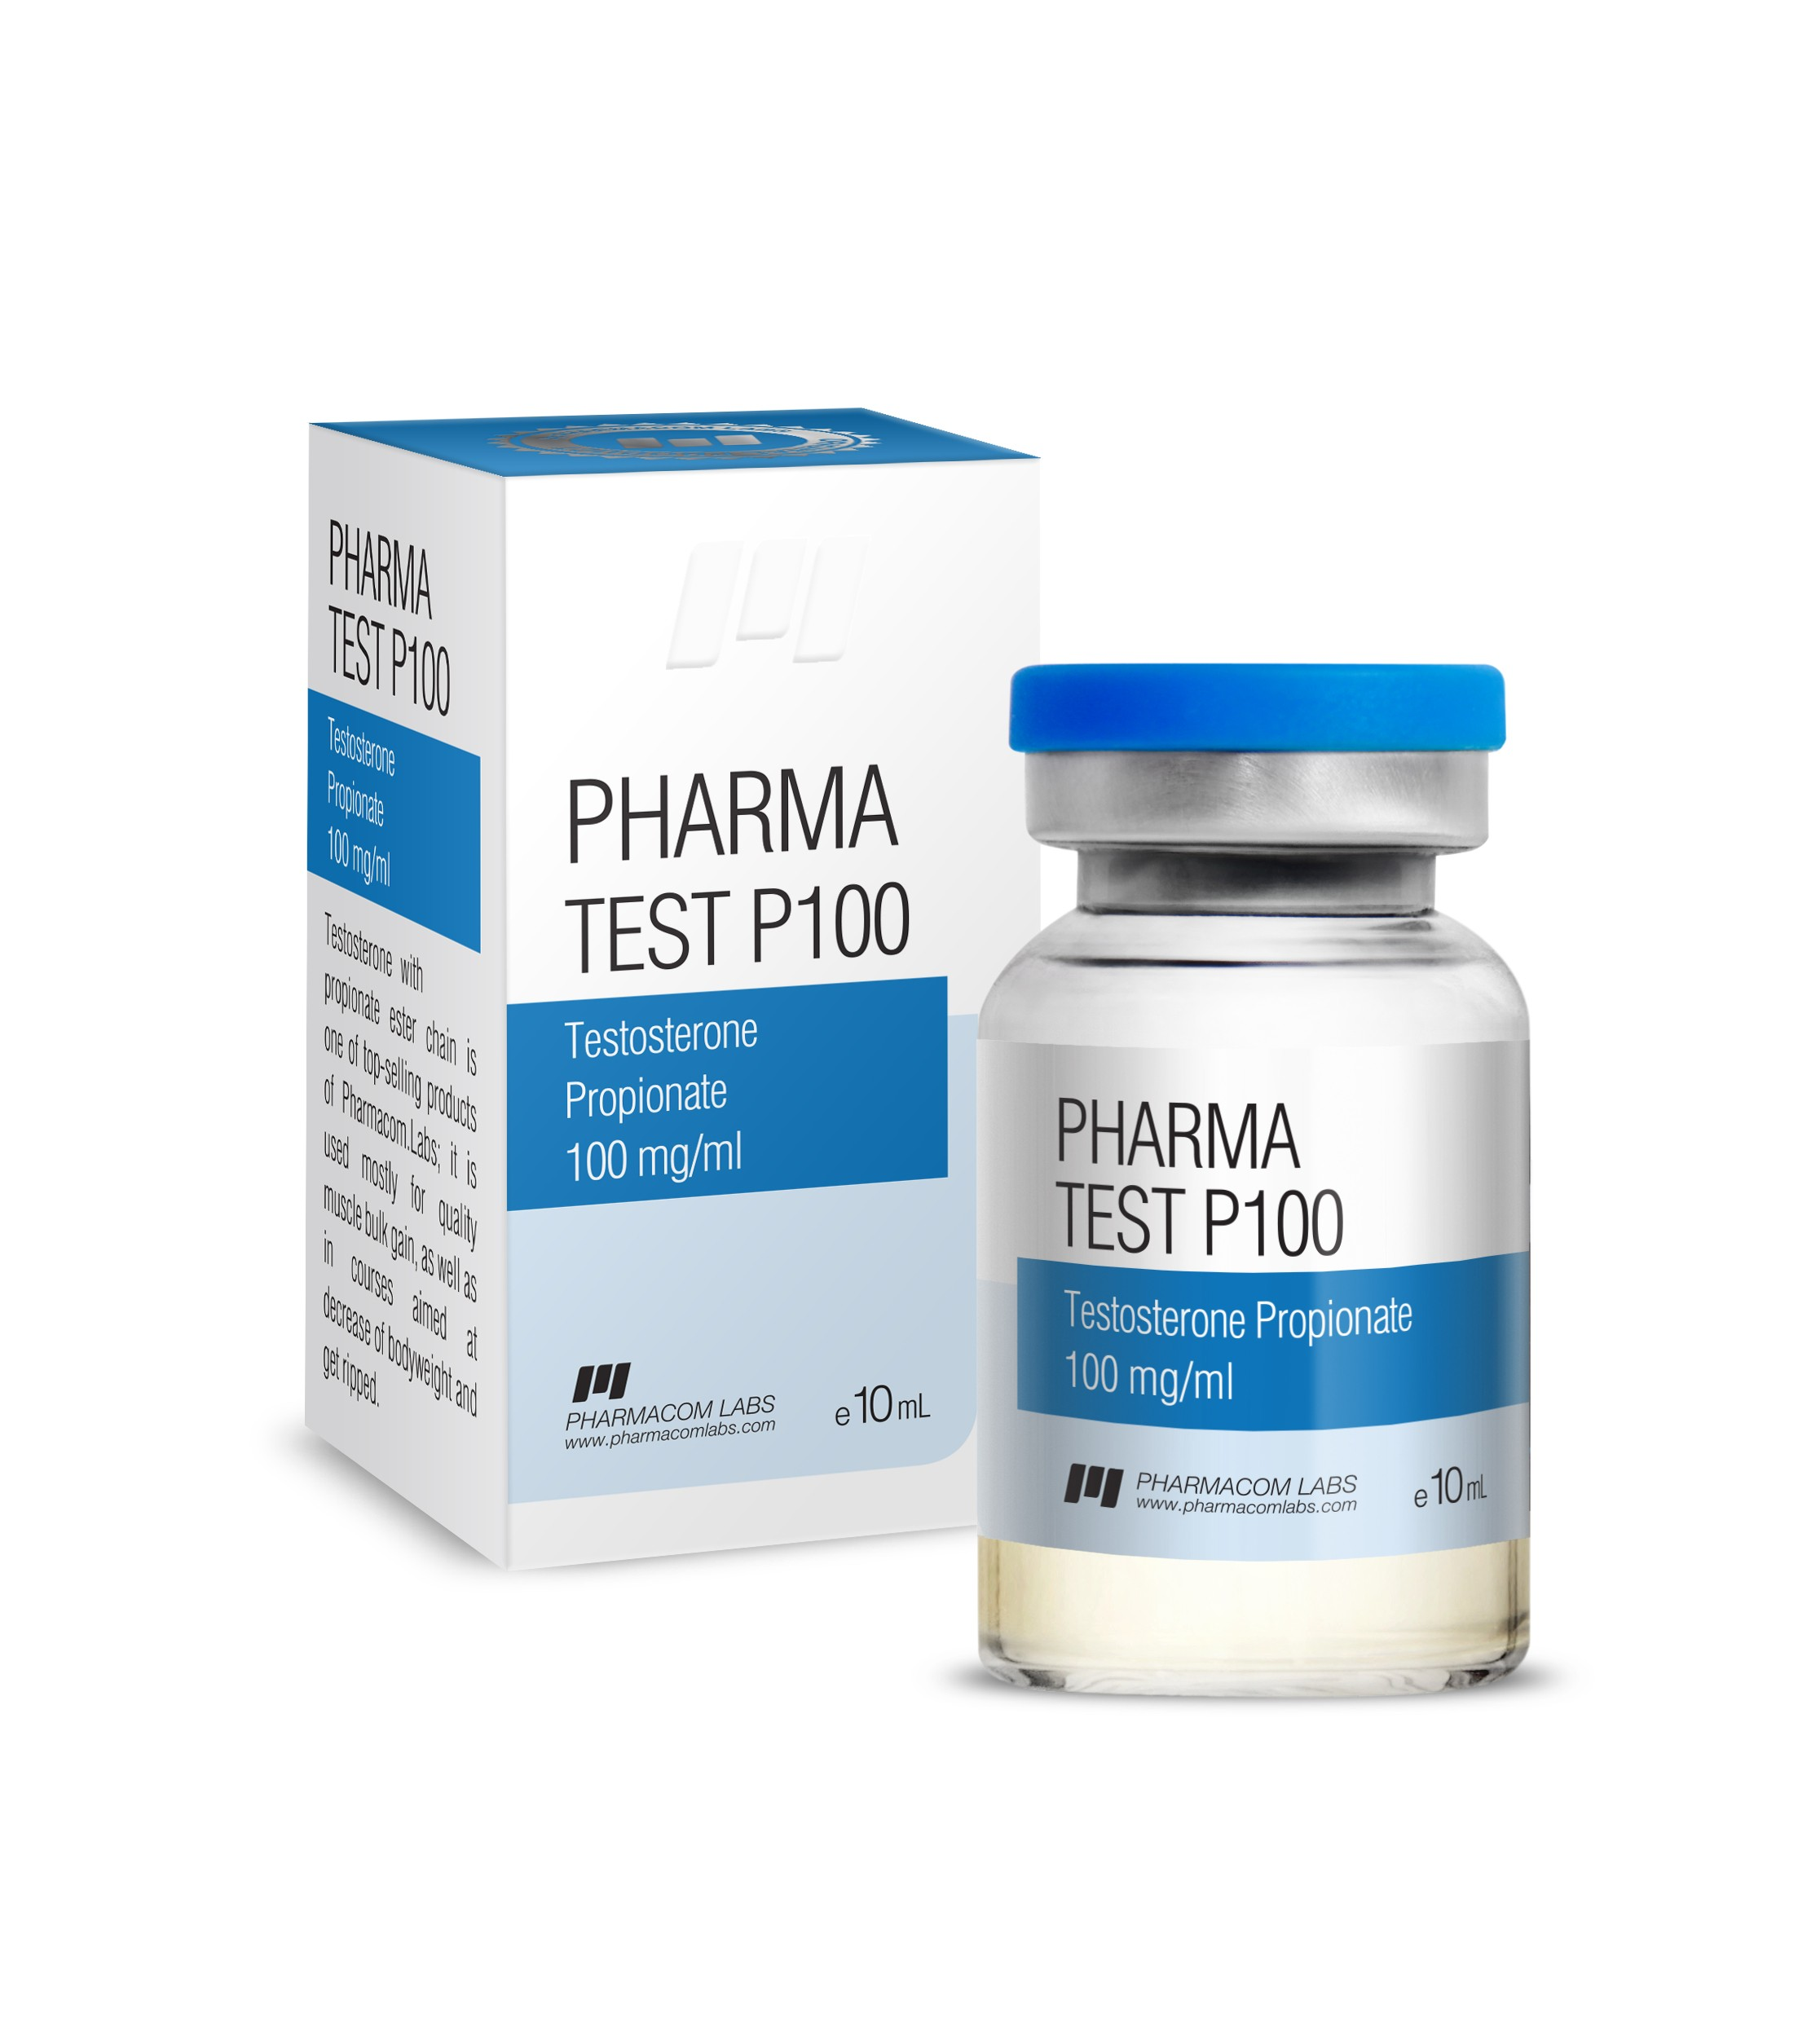 Pharmacom labs tadalafil is there an alternative to steroid injections